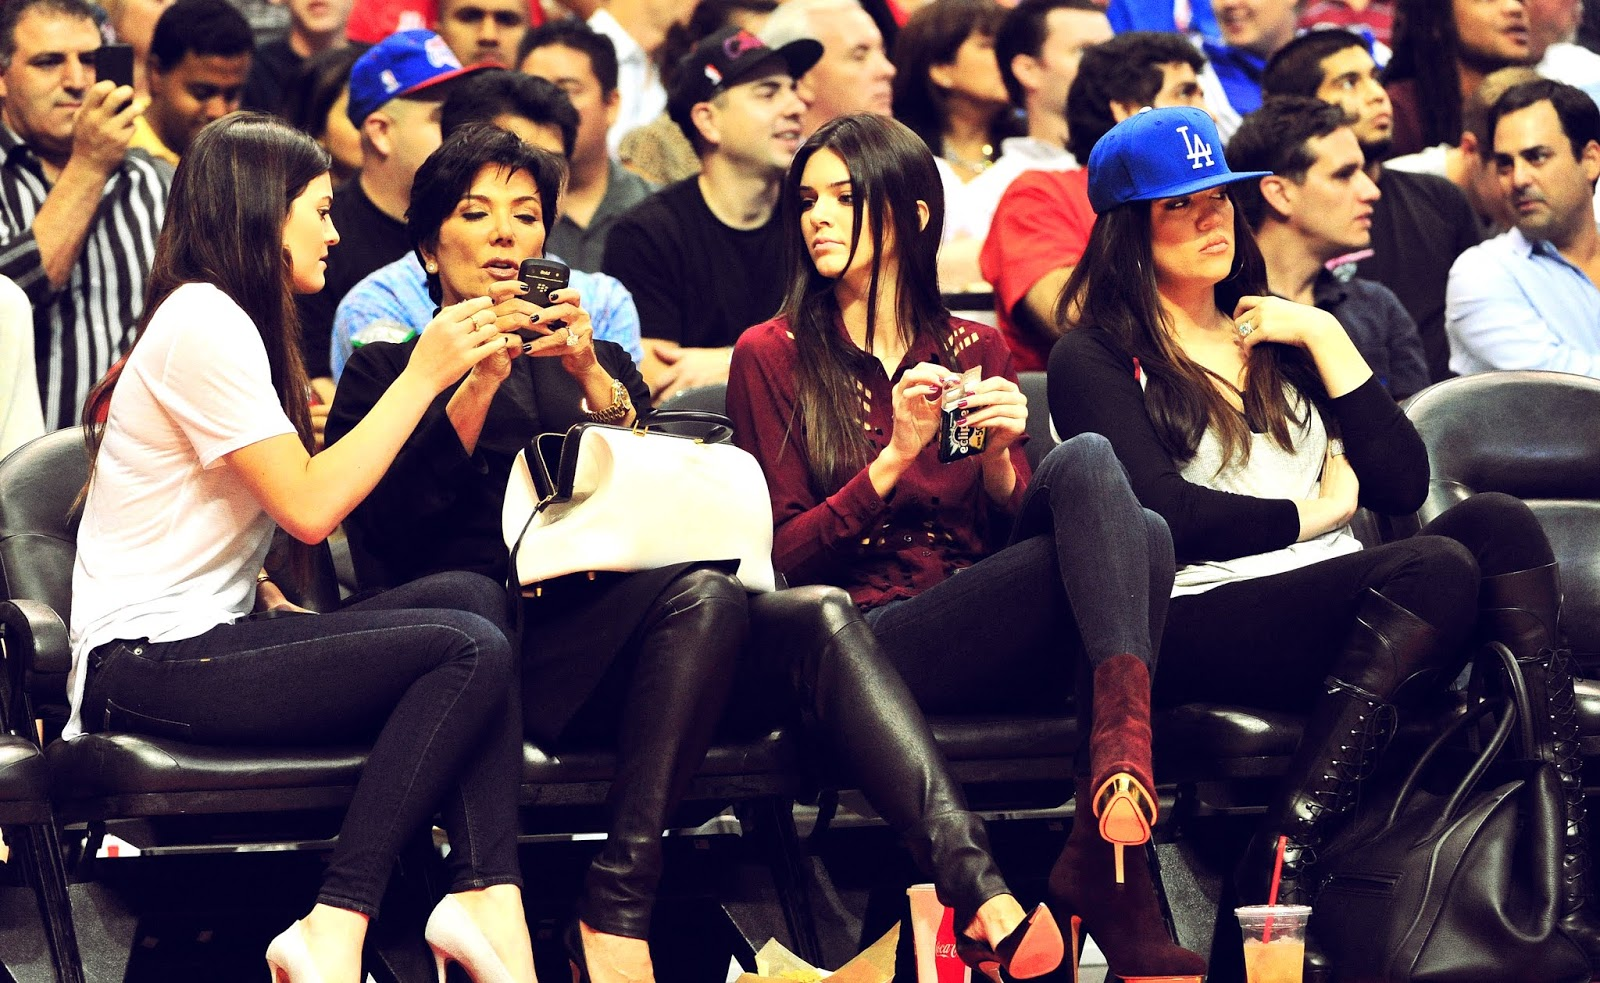 18 - Watching The Los Angeles Clippers Game on October 17, 2012